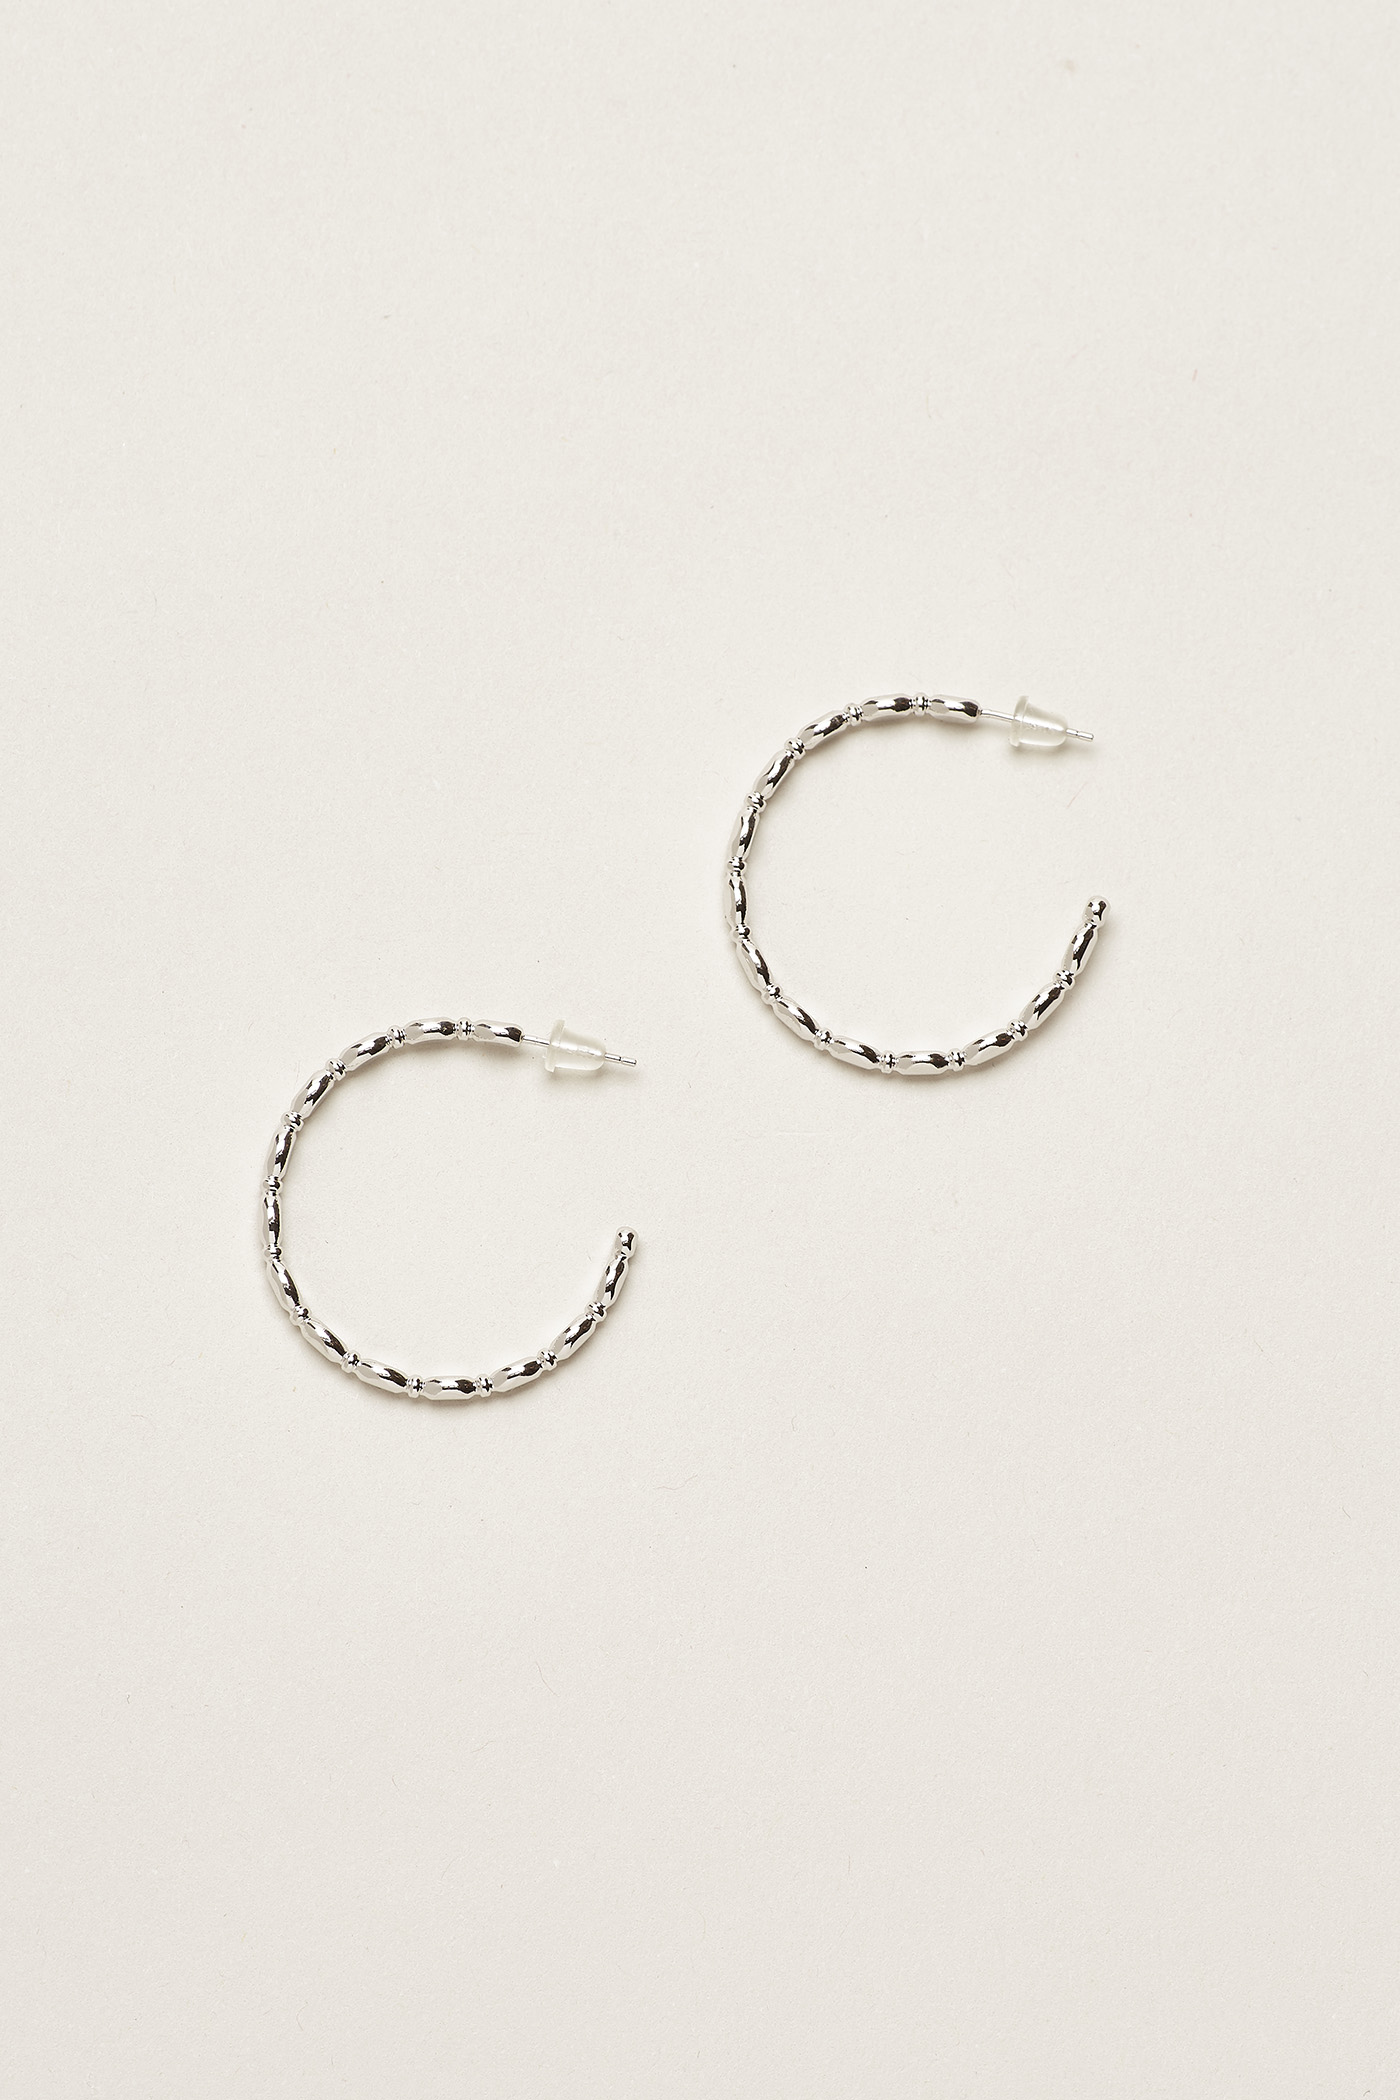 Minh Small Beaded Hoop Earrings